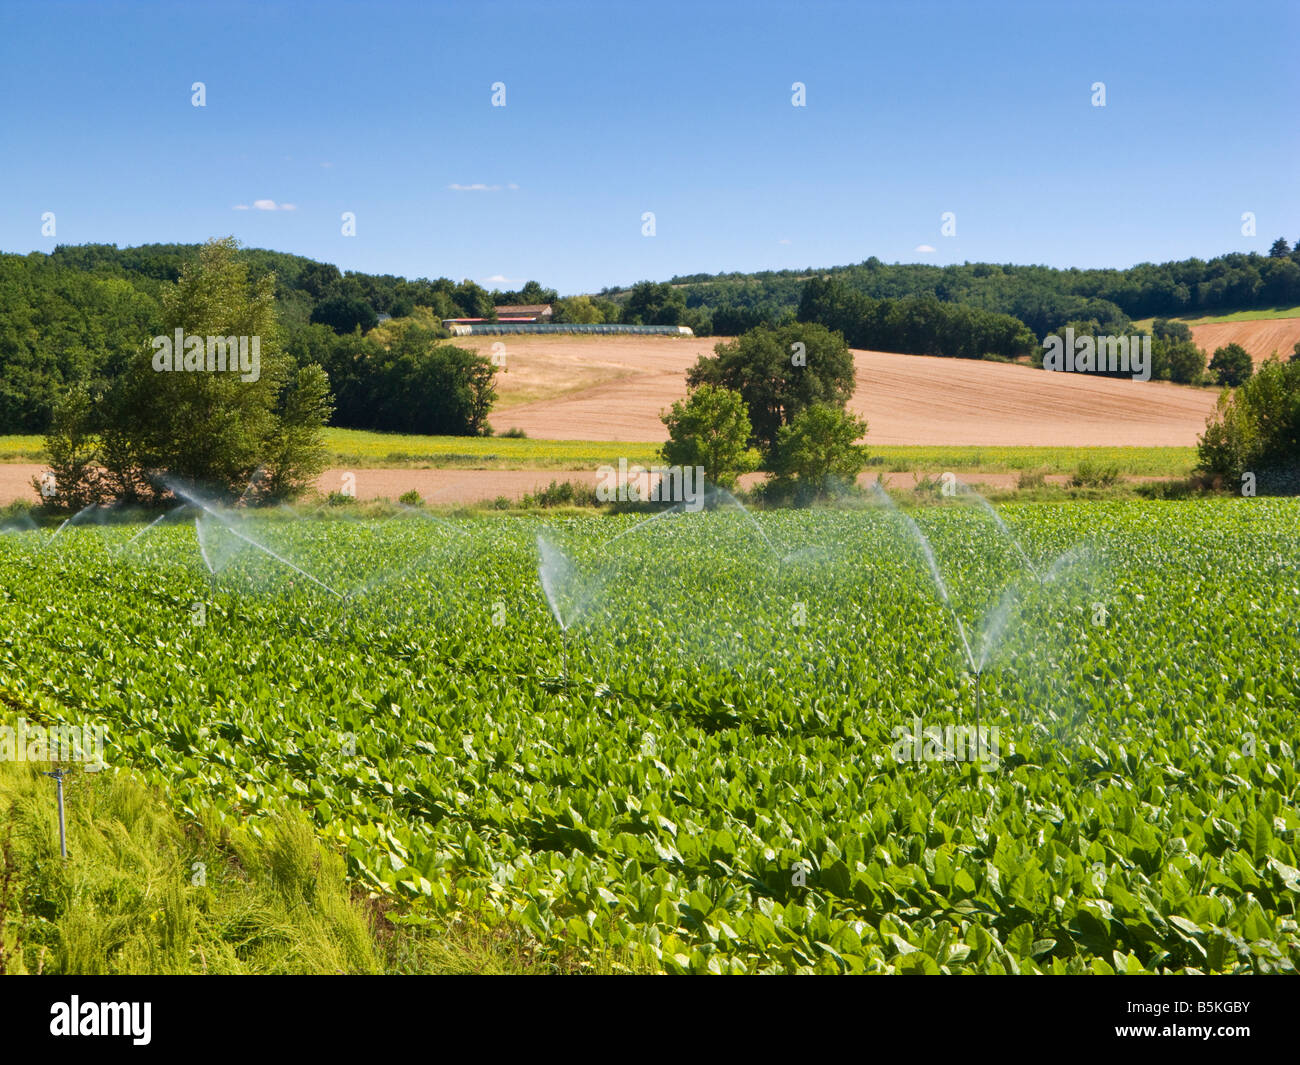 Automatic crop irrigation system in a field in the South of France, Europe - Stock Image